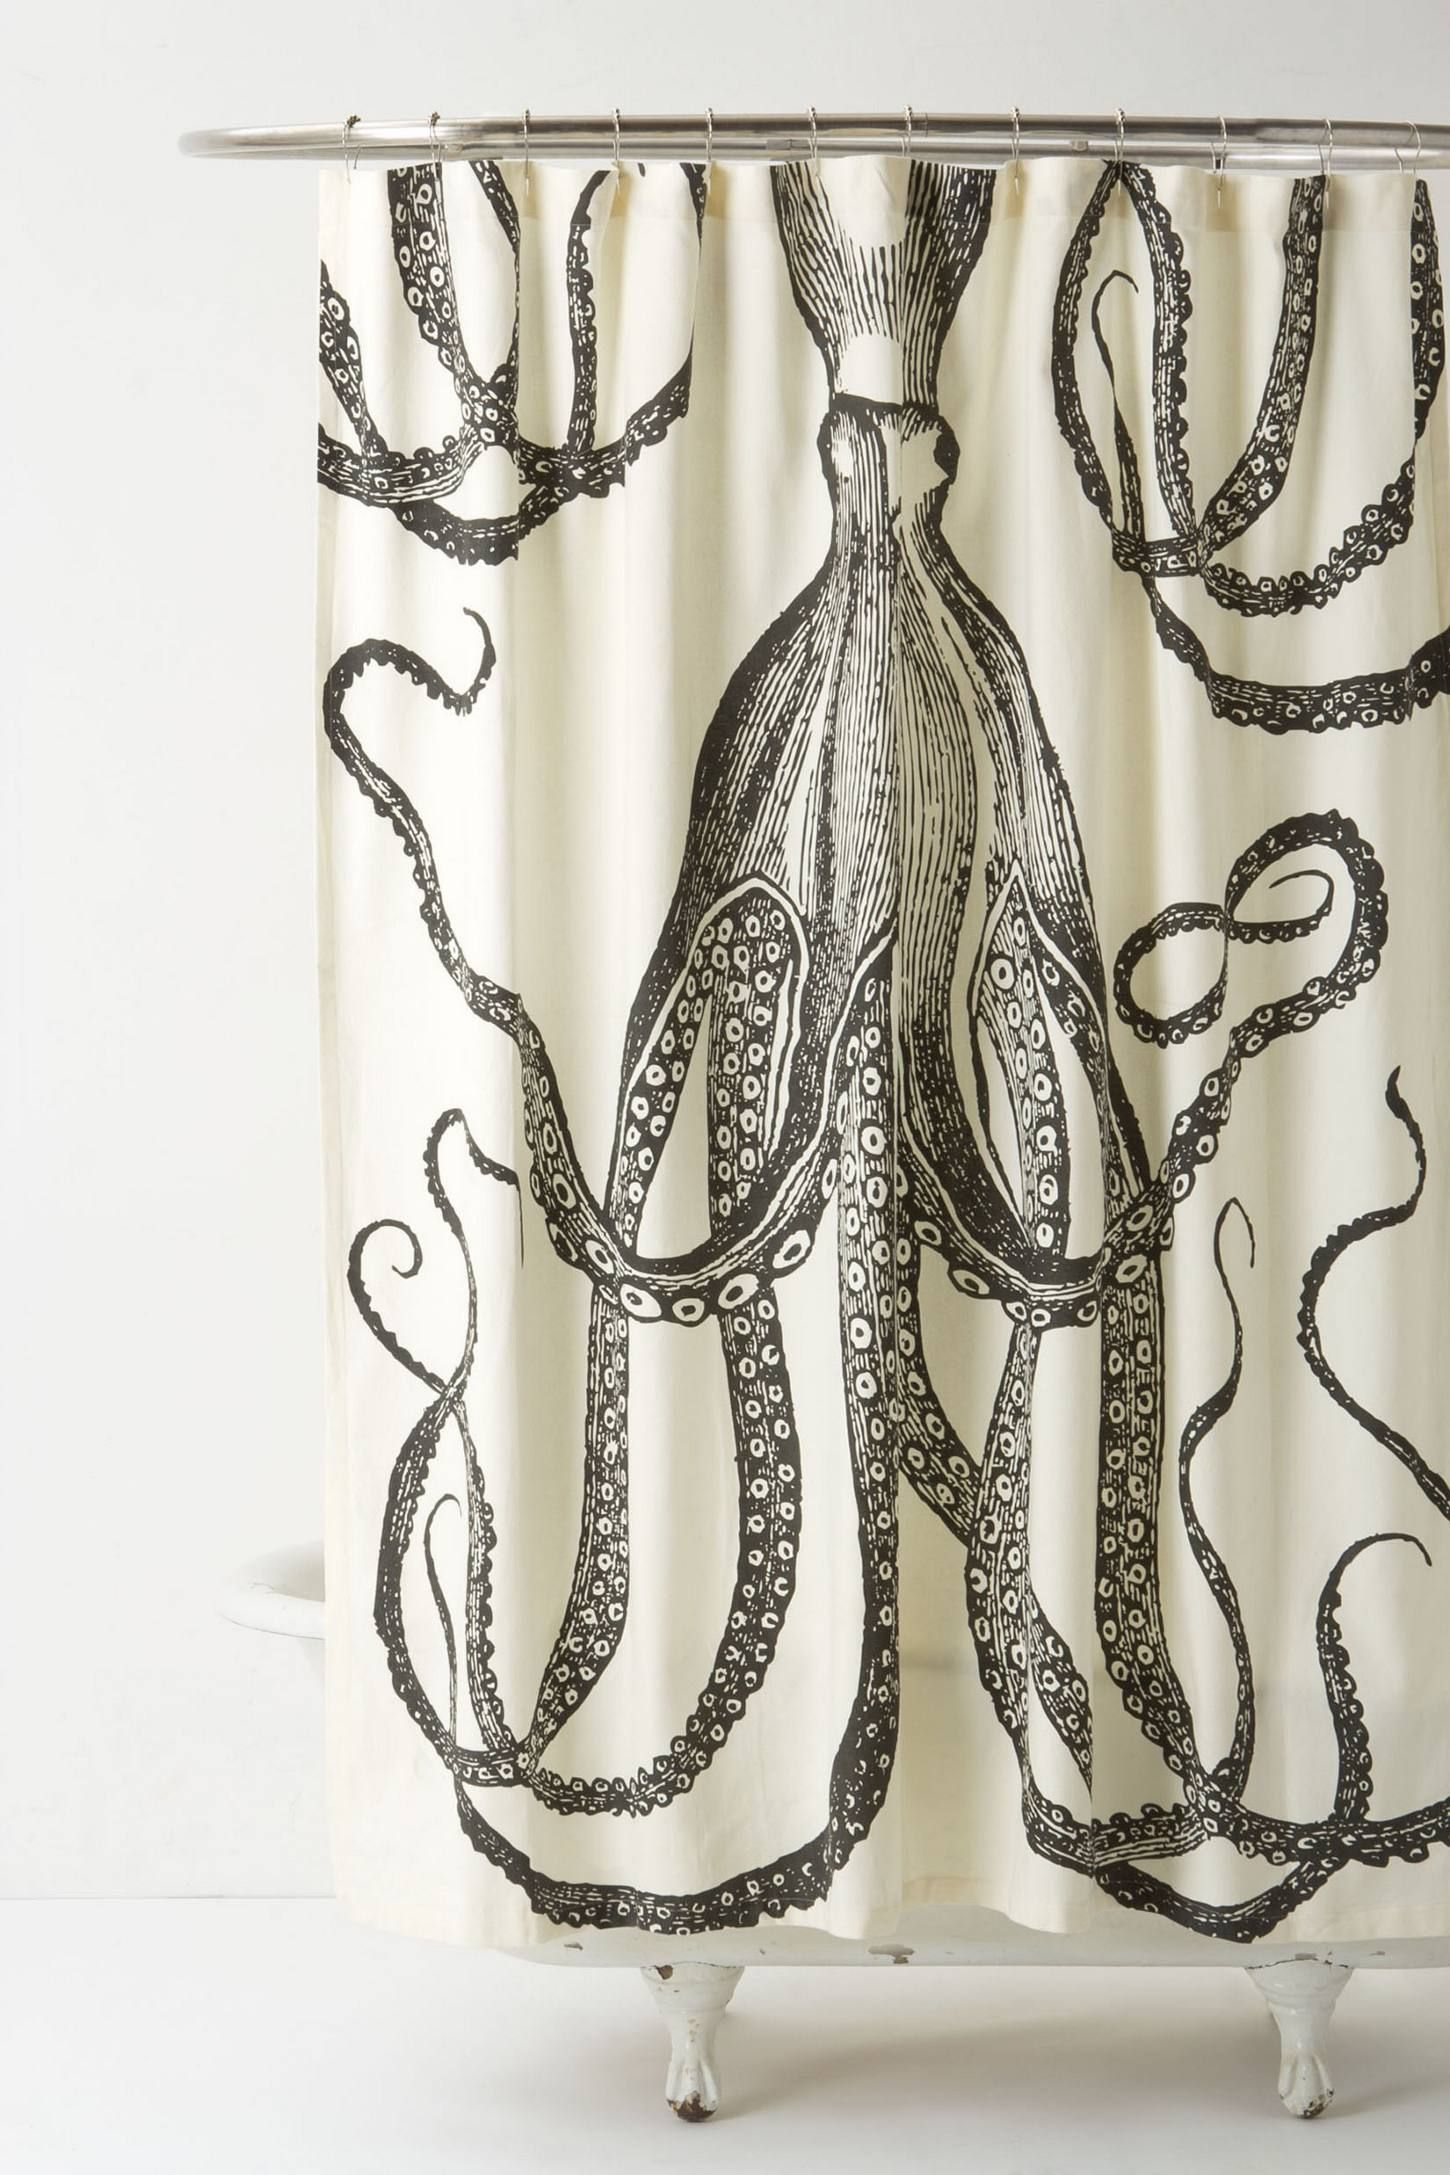 Octopus Garden Shower Curtain Unique Shower Curtain Octopus